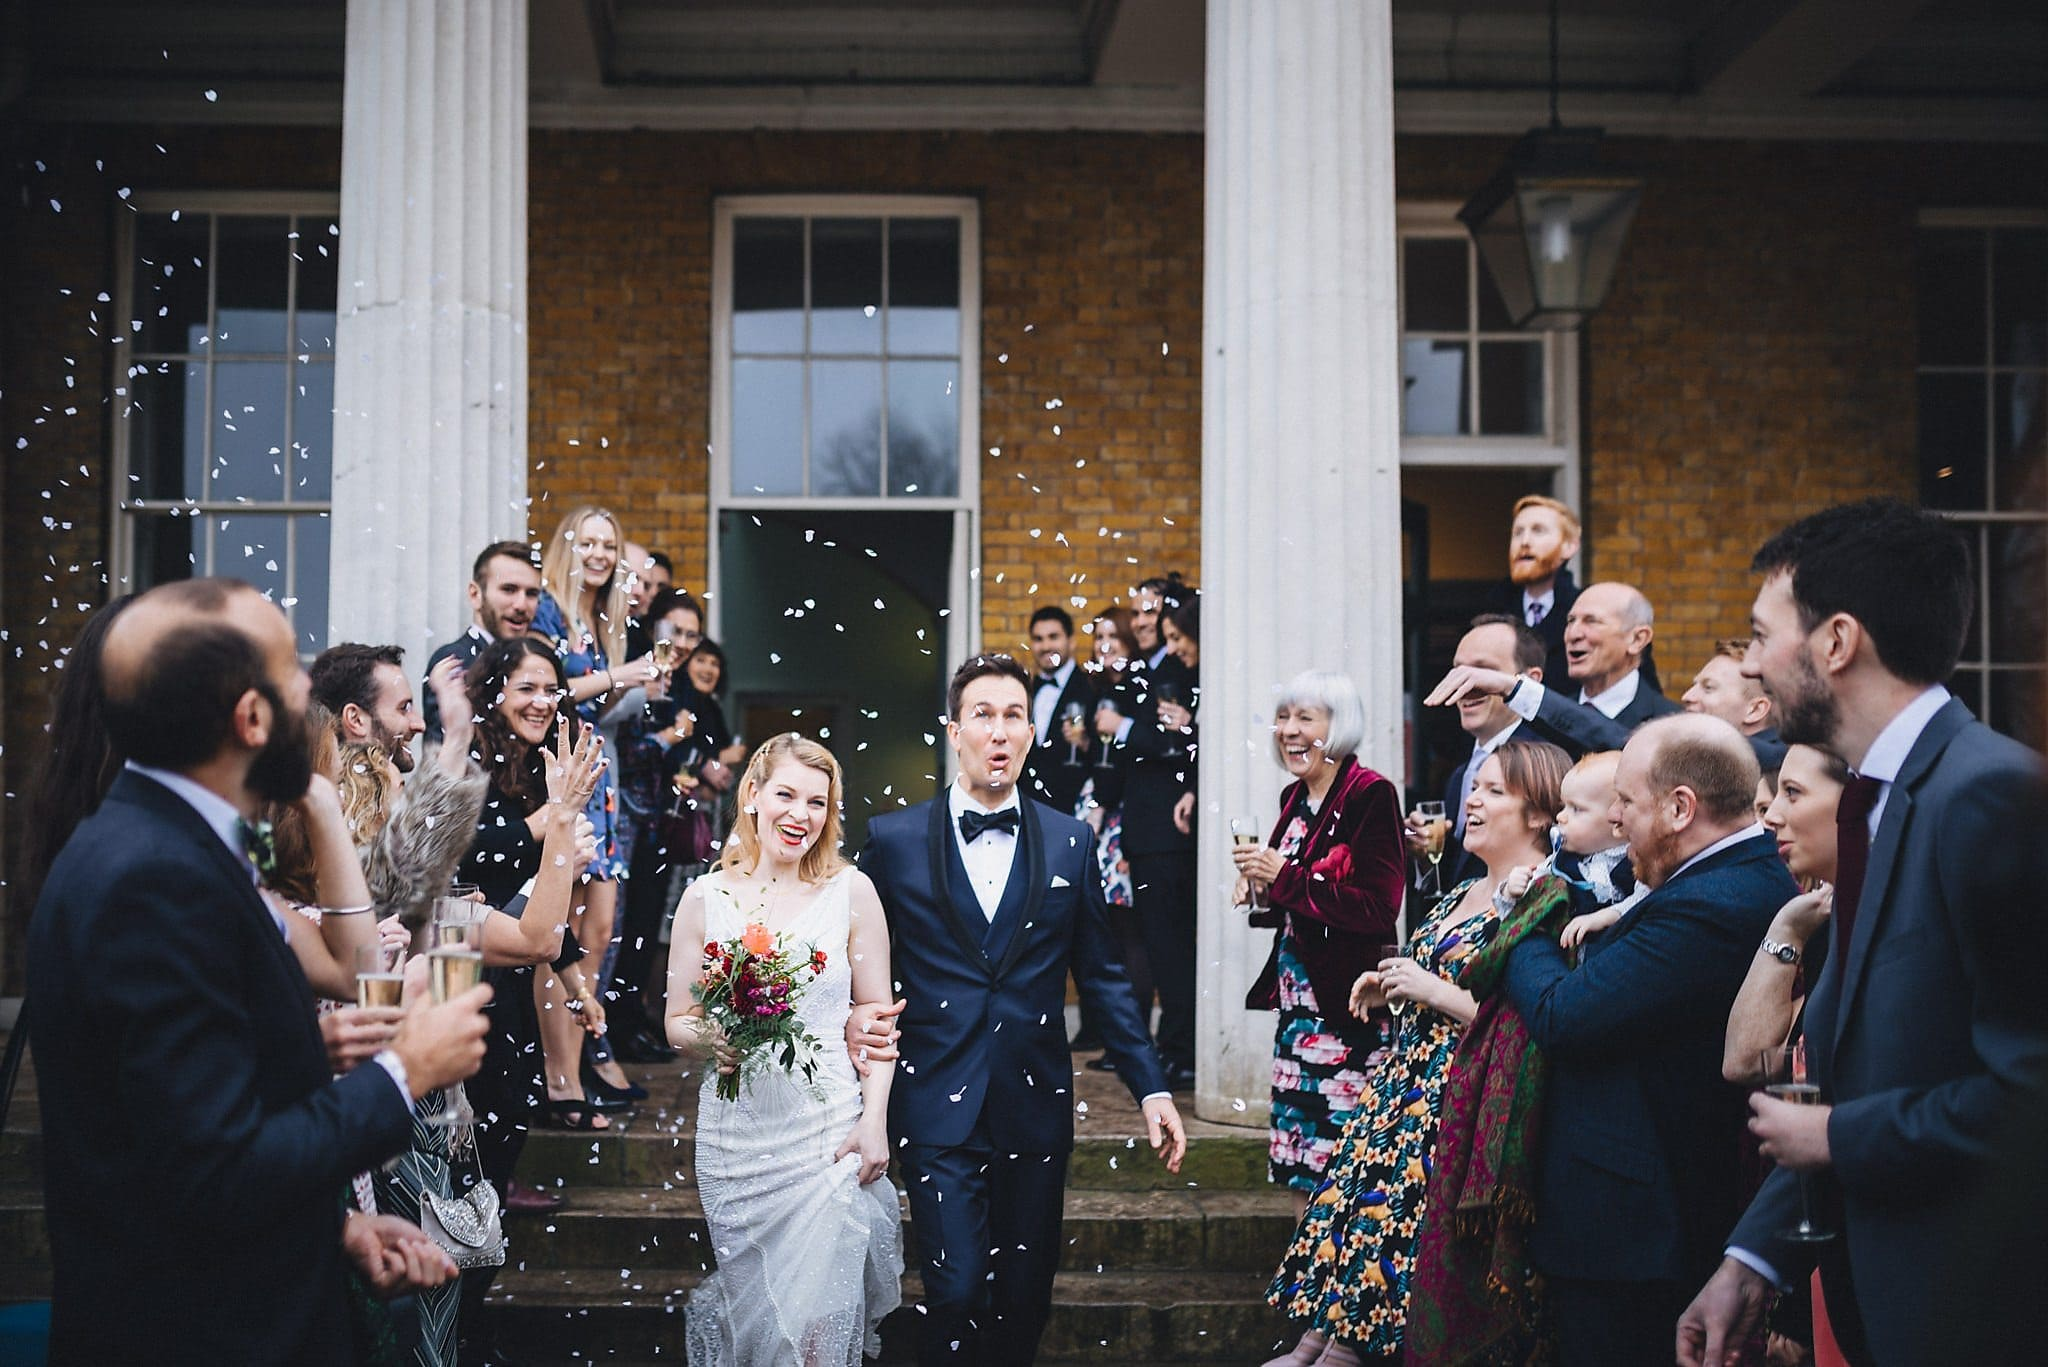 Bride and groom walk through white confetti at Clissold House